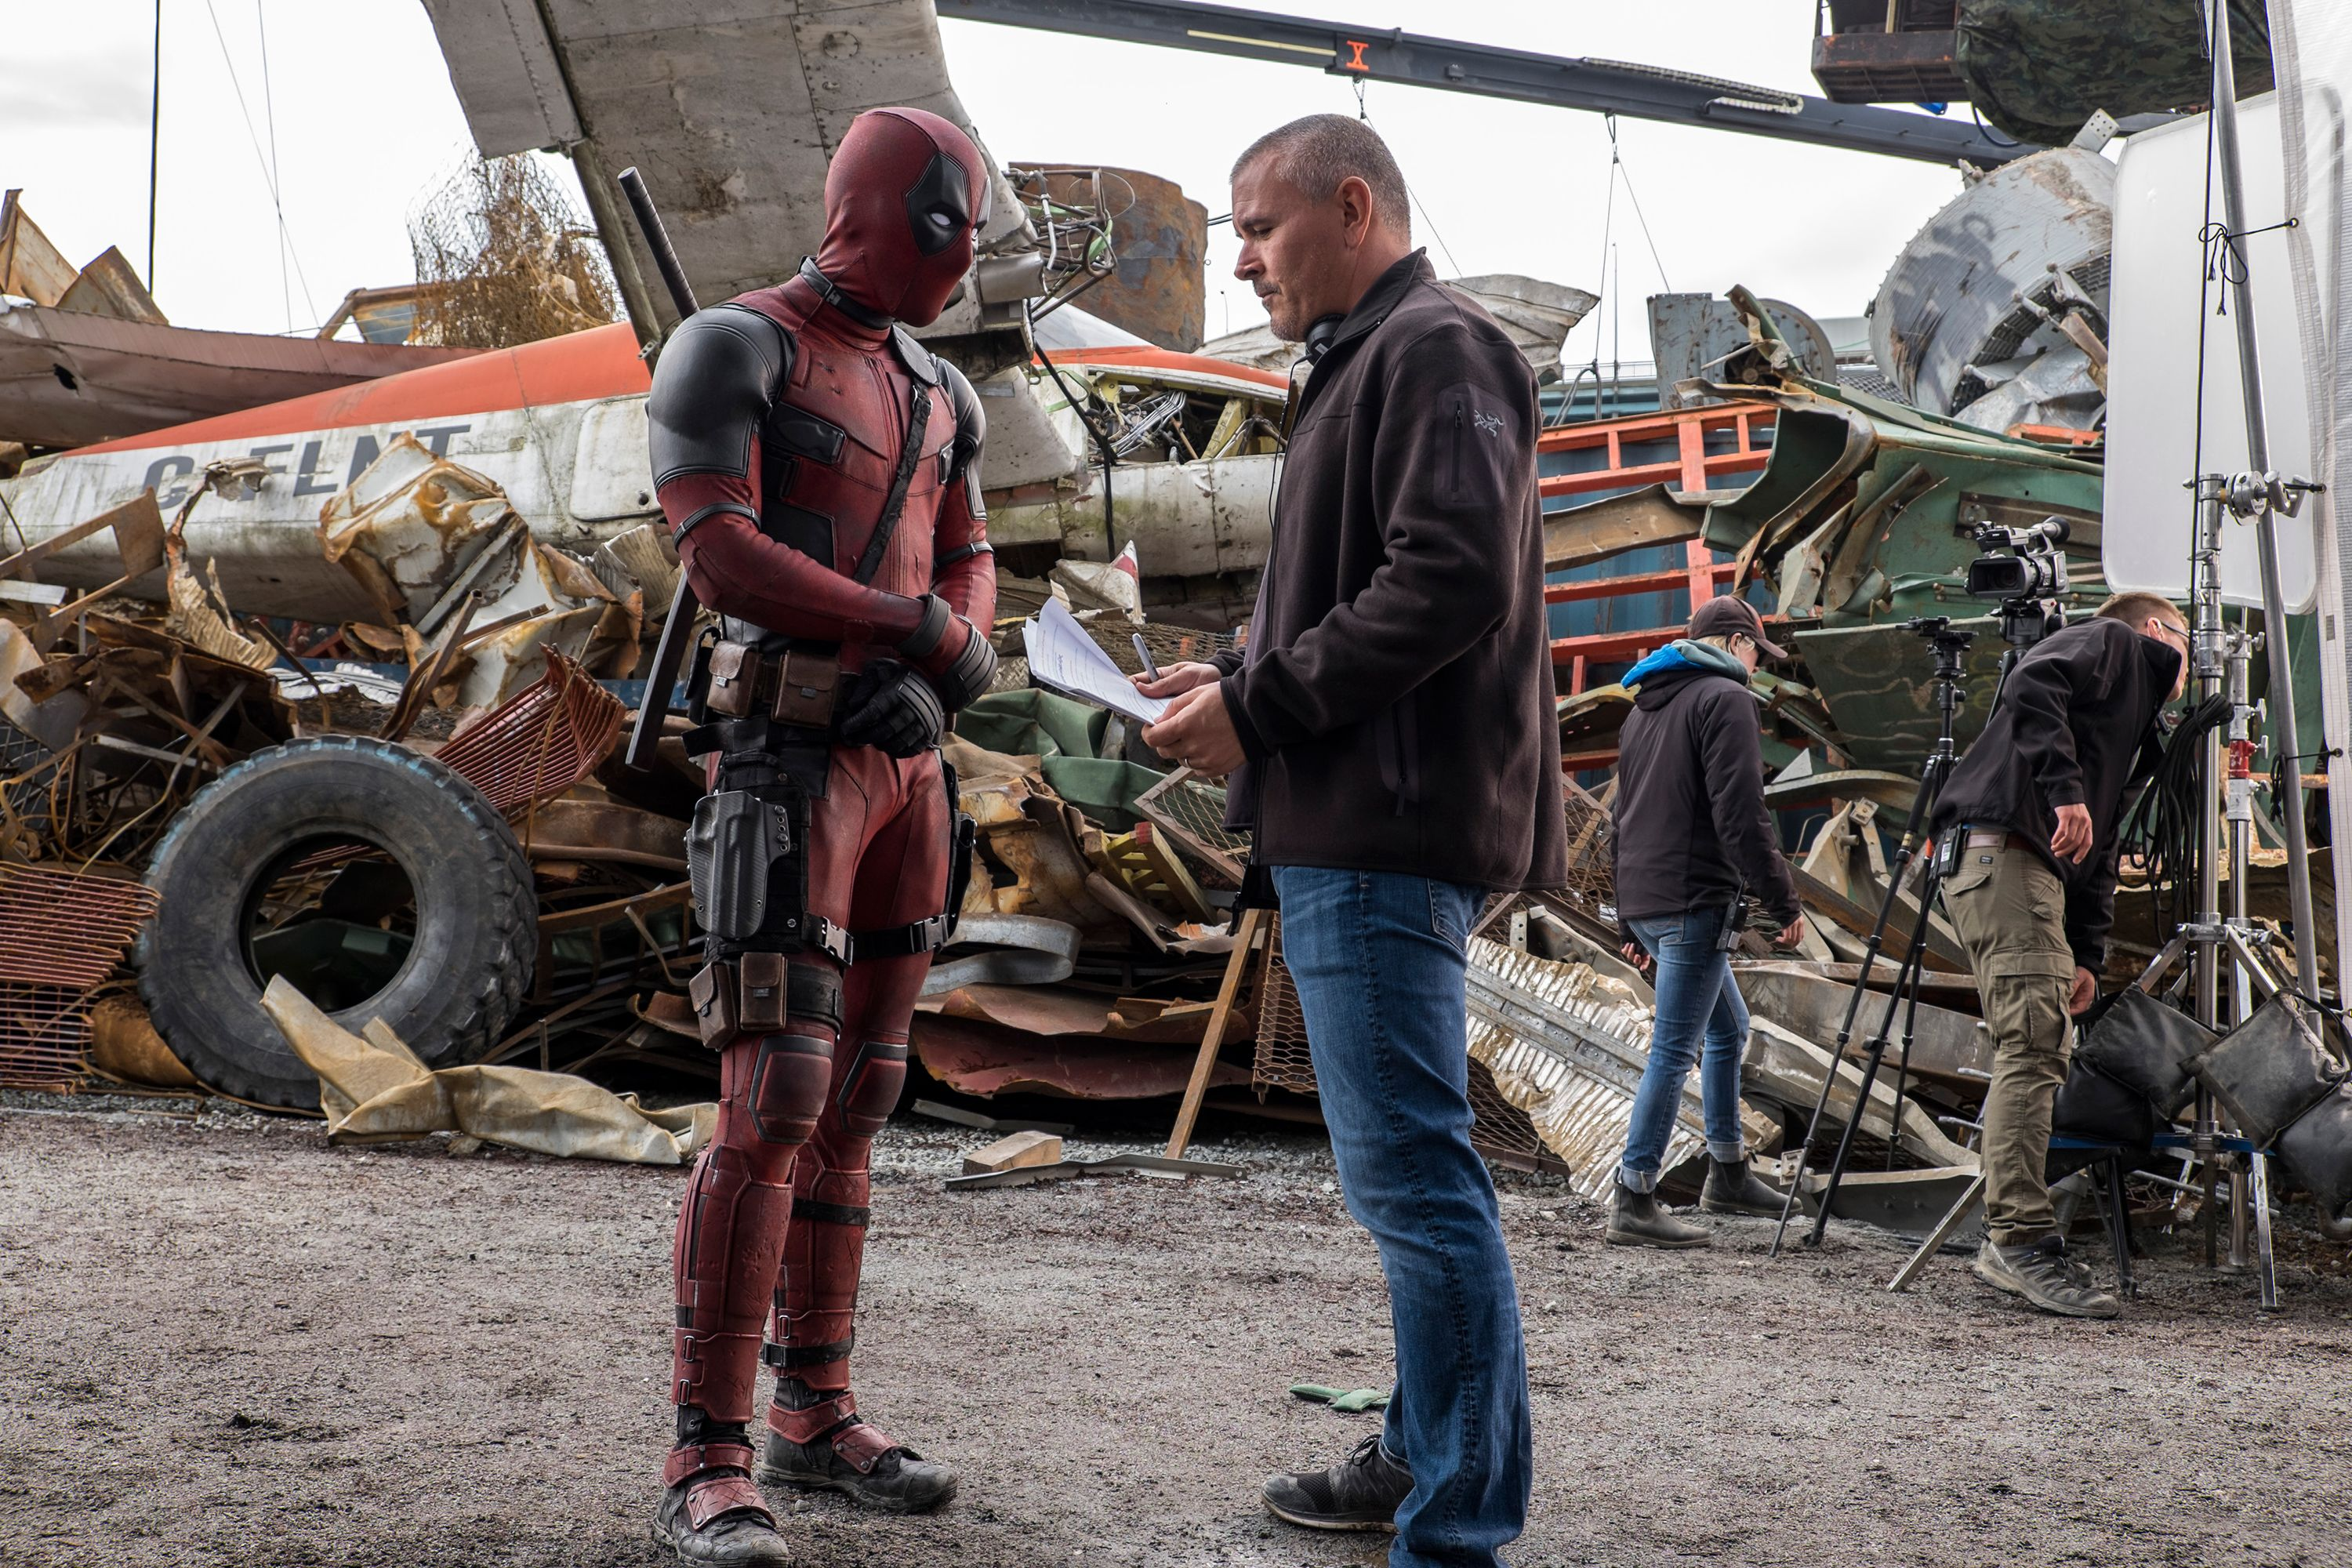 'Deadpool': Ryan Reynolds and Tim Miller on Footage Leaks, 'Guardians' Anxiety and Hyper-Violence